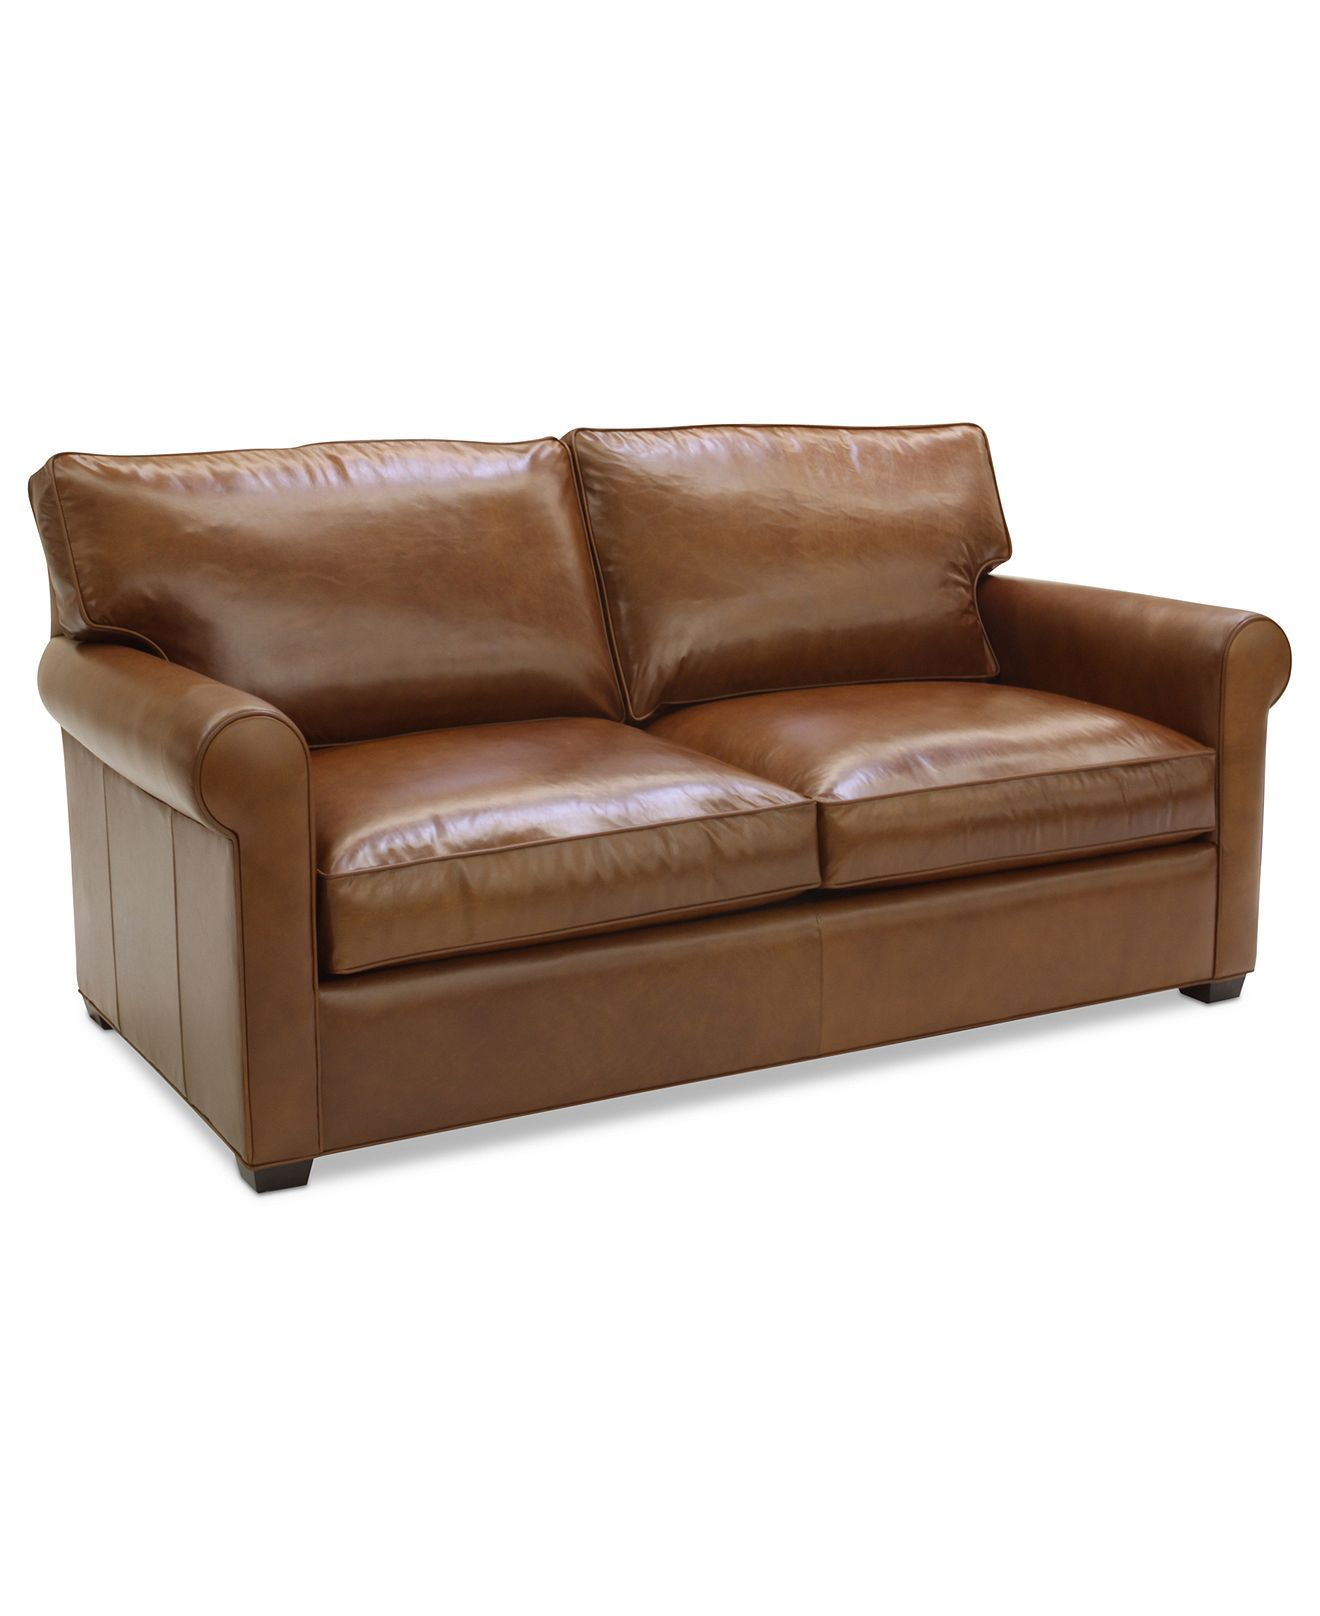 Lear Leather Sofa Bed Full Sleeper 75 W X 40 D X 32 H Furniture